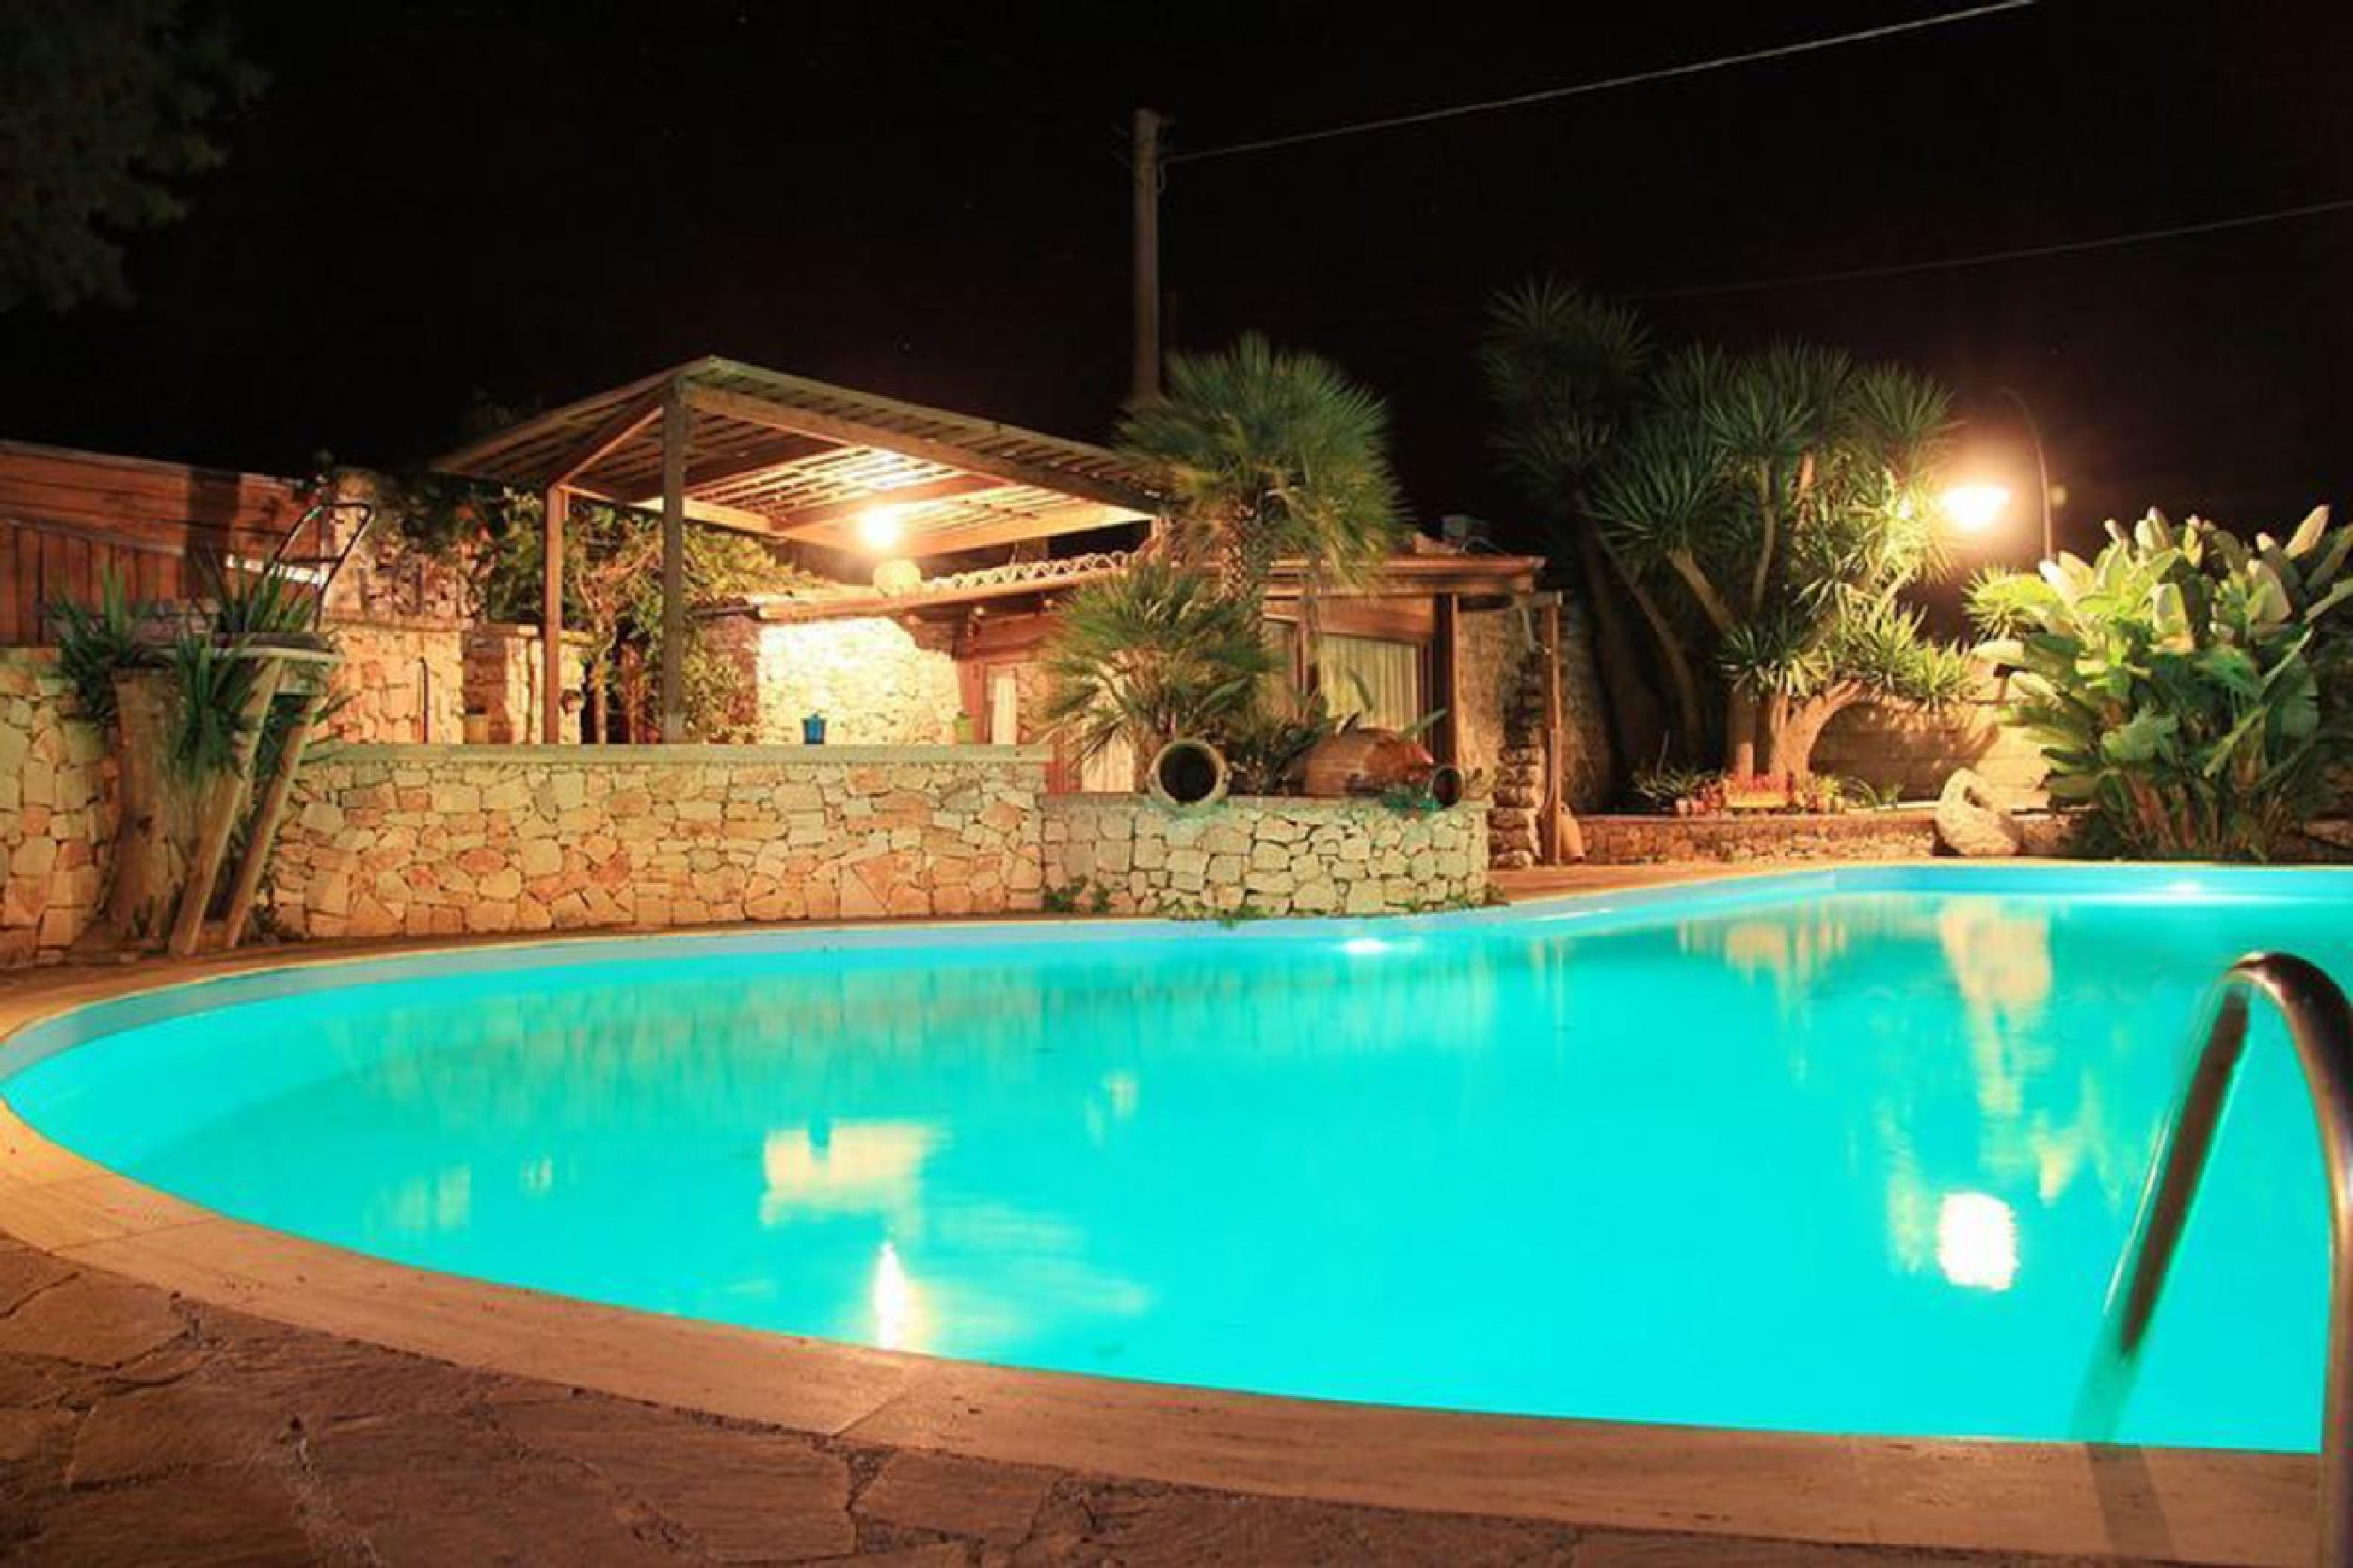 Apartment Trilo Noce shared pool photo 25188296